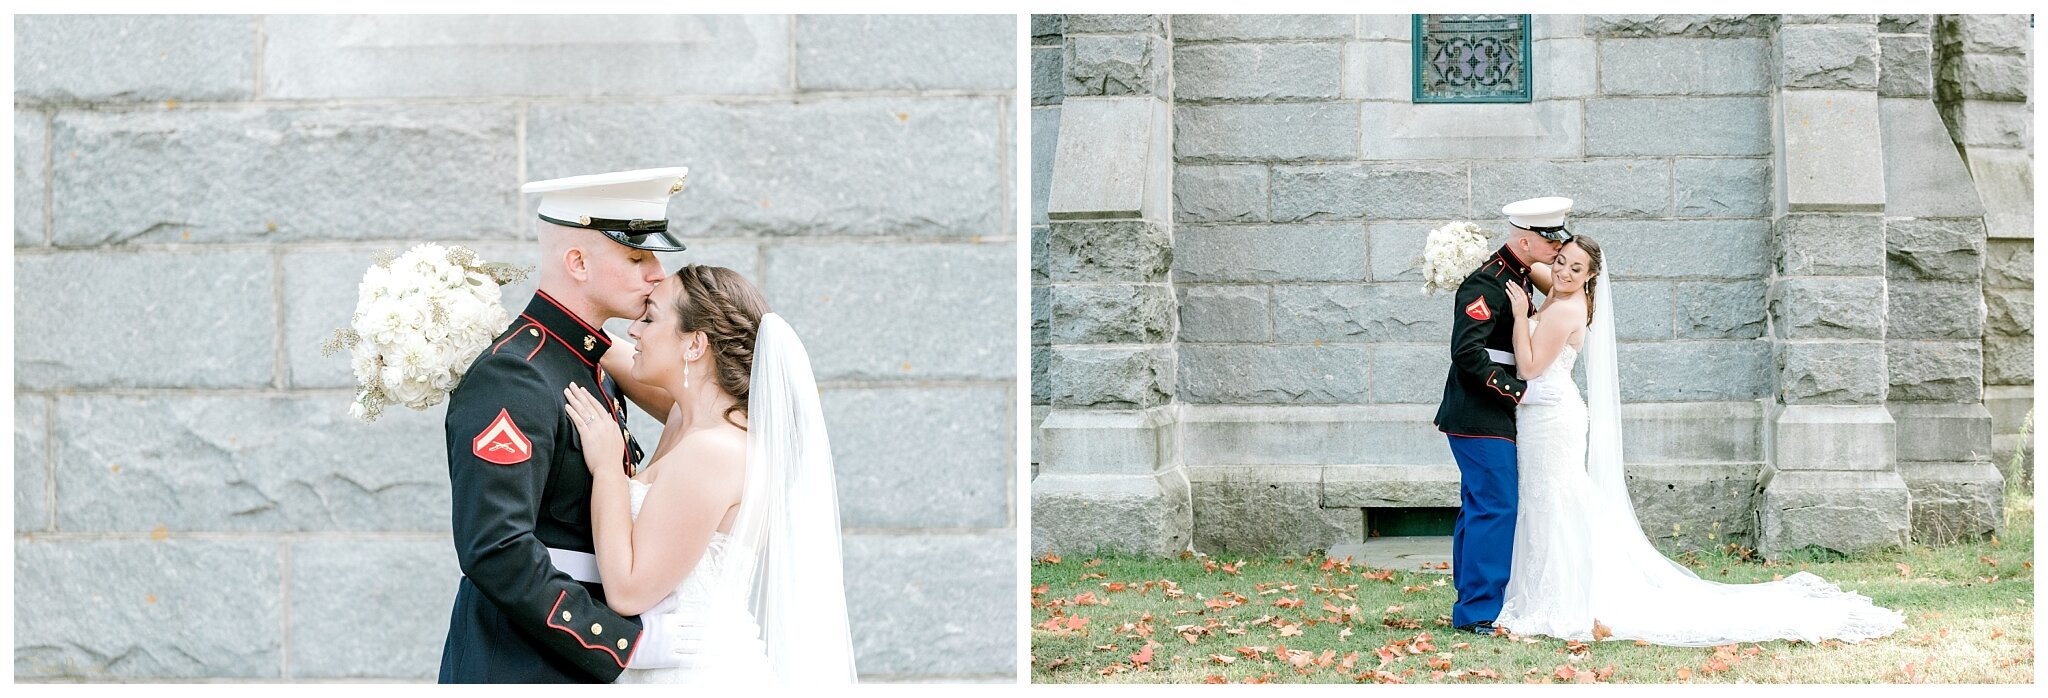 Danielle and Tyler's Wedding Day Portraits